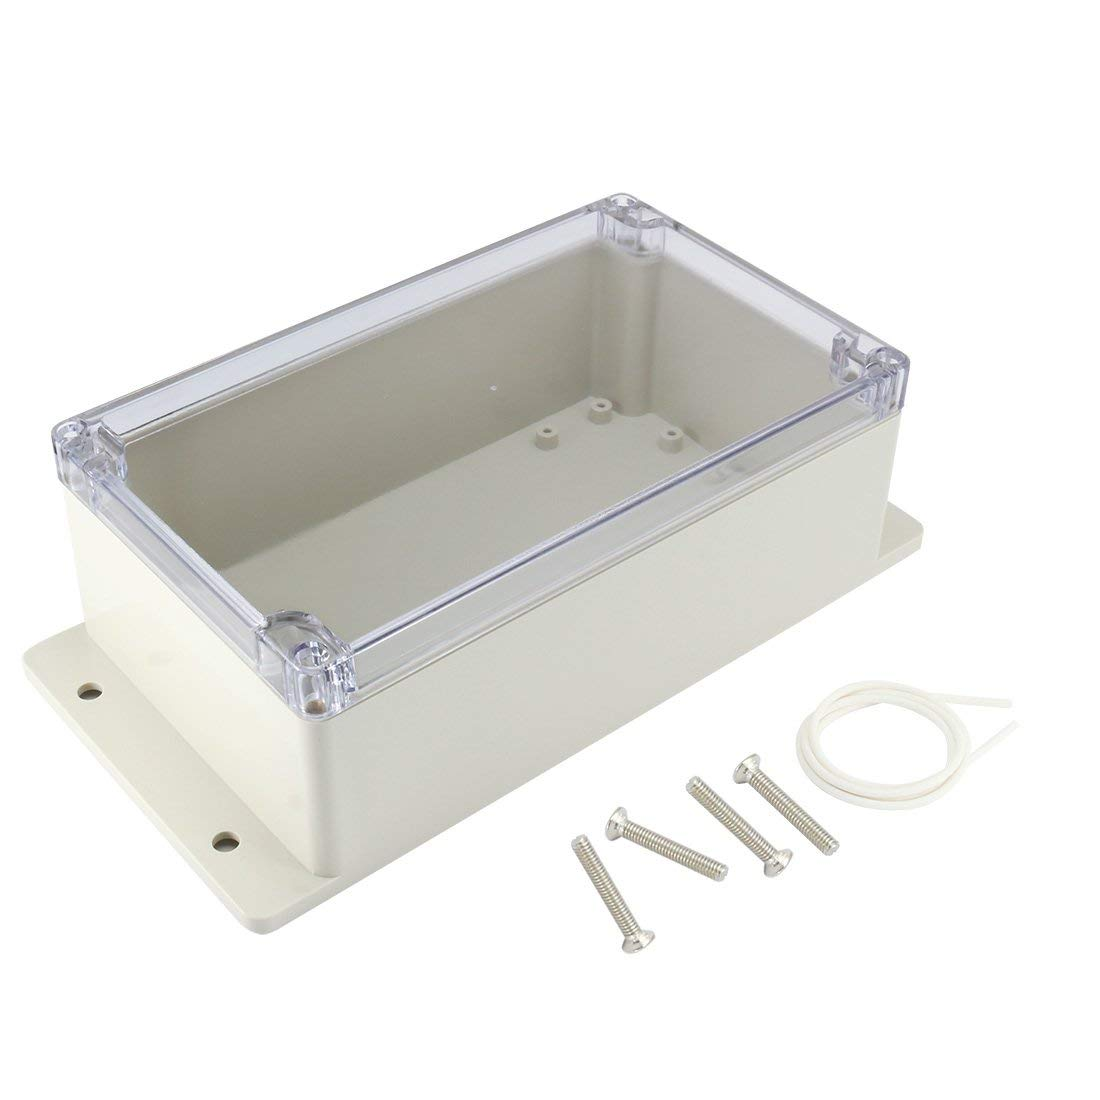 ABS Junction Box Universal Project Enclosure w PC Transparent Cover 200mmx120mmx75mm sourcingmap 7.9x4.7x2.94